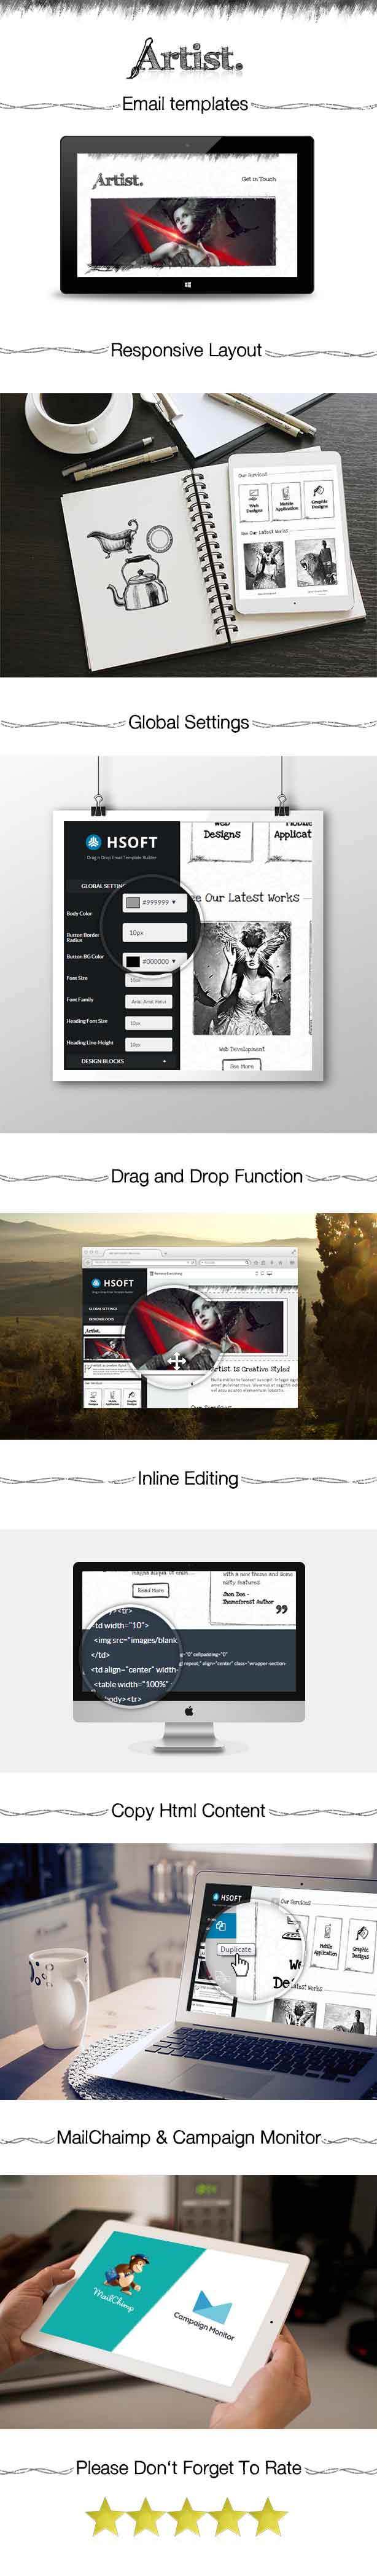 Artist - Responsive Email Template + Builder Access